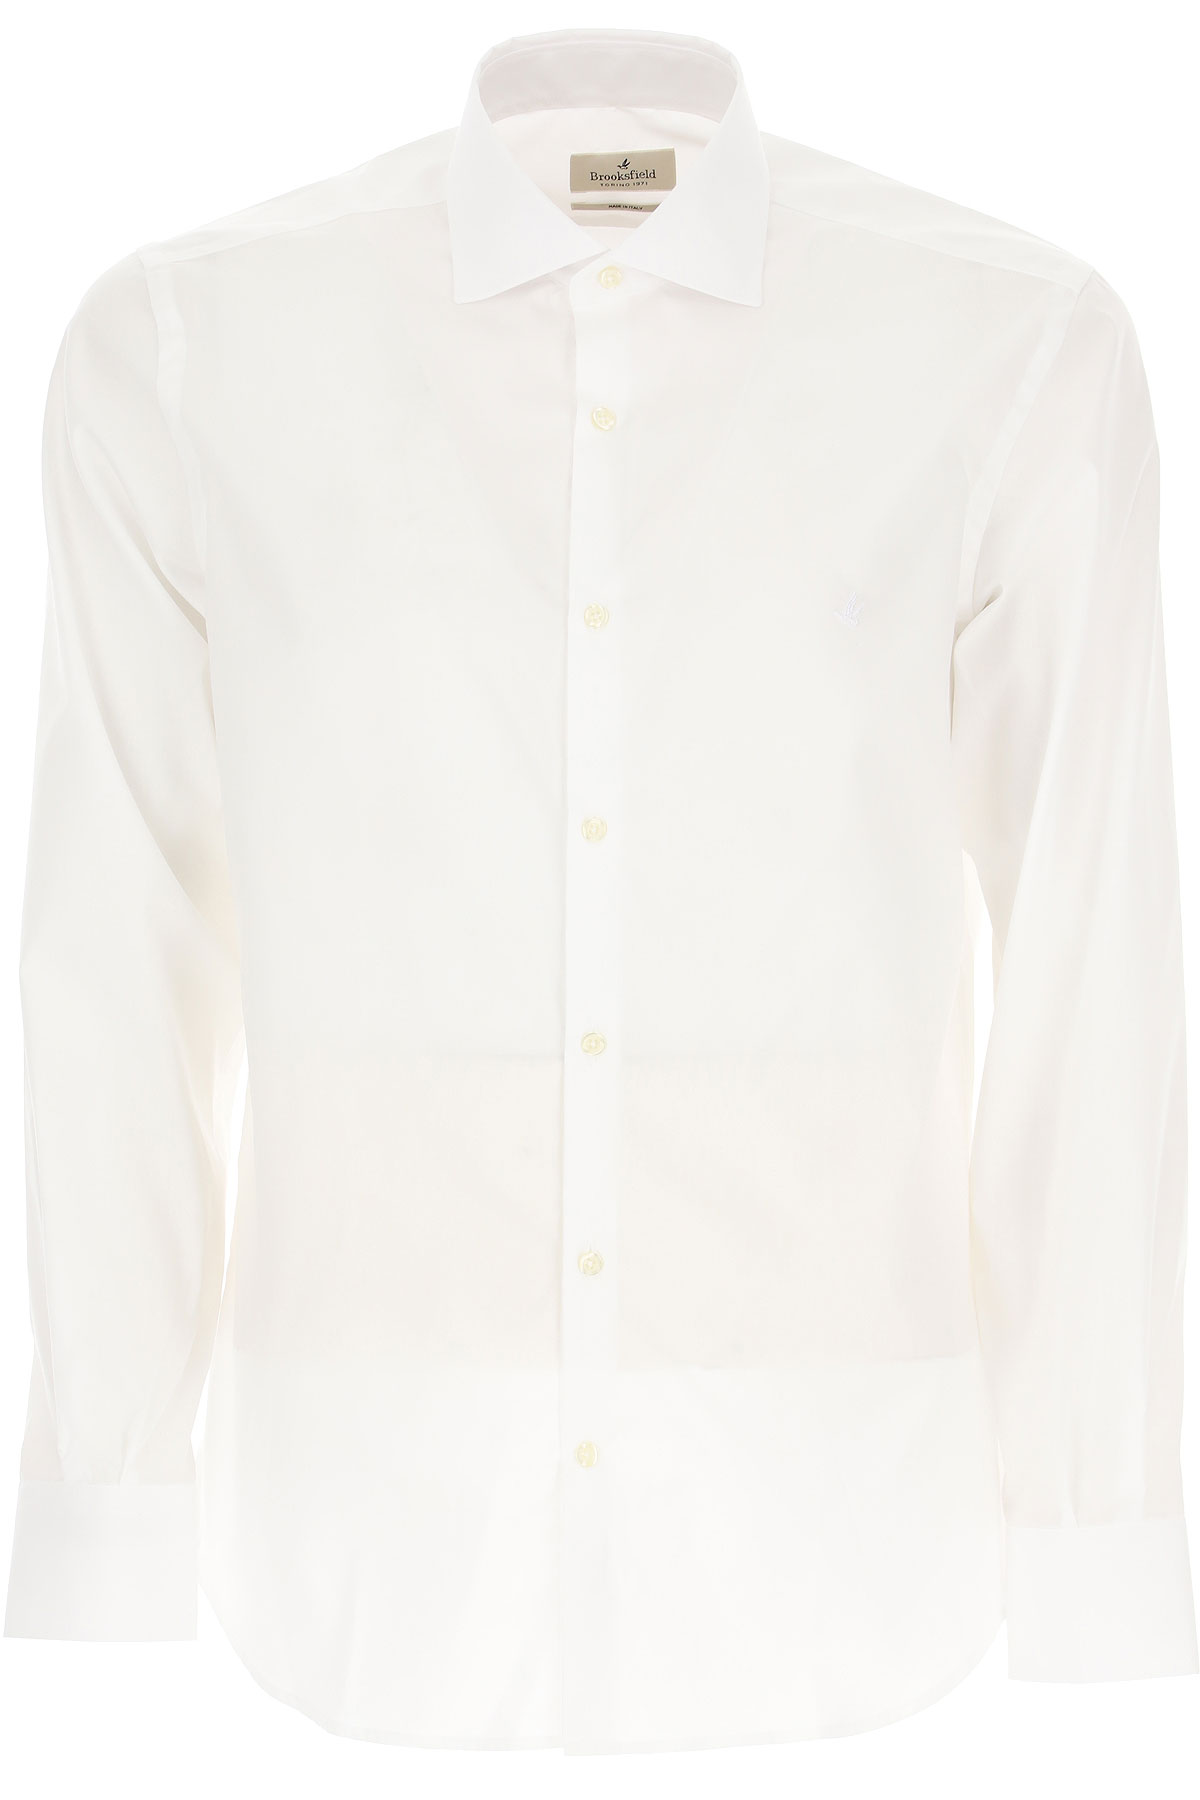 Brooksfield Shirt for Men On Sale, White, Cotton, 2019, 15.5 15.75 16 16.5 17 17.5